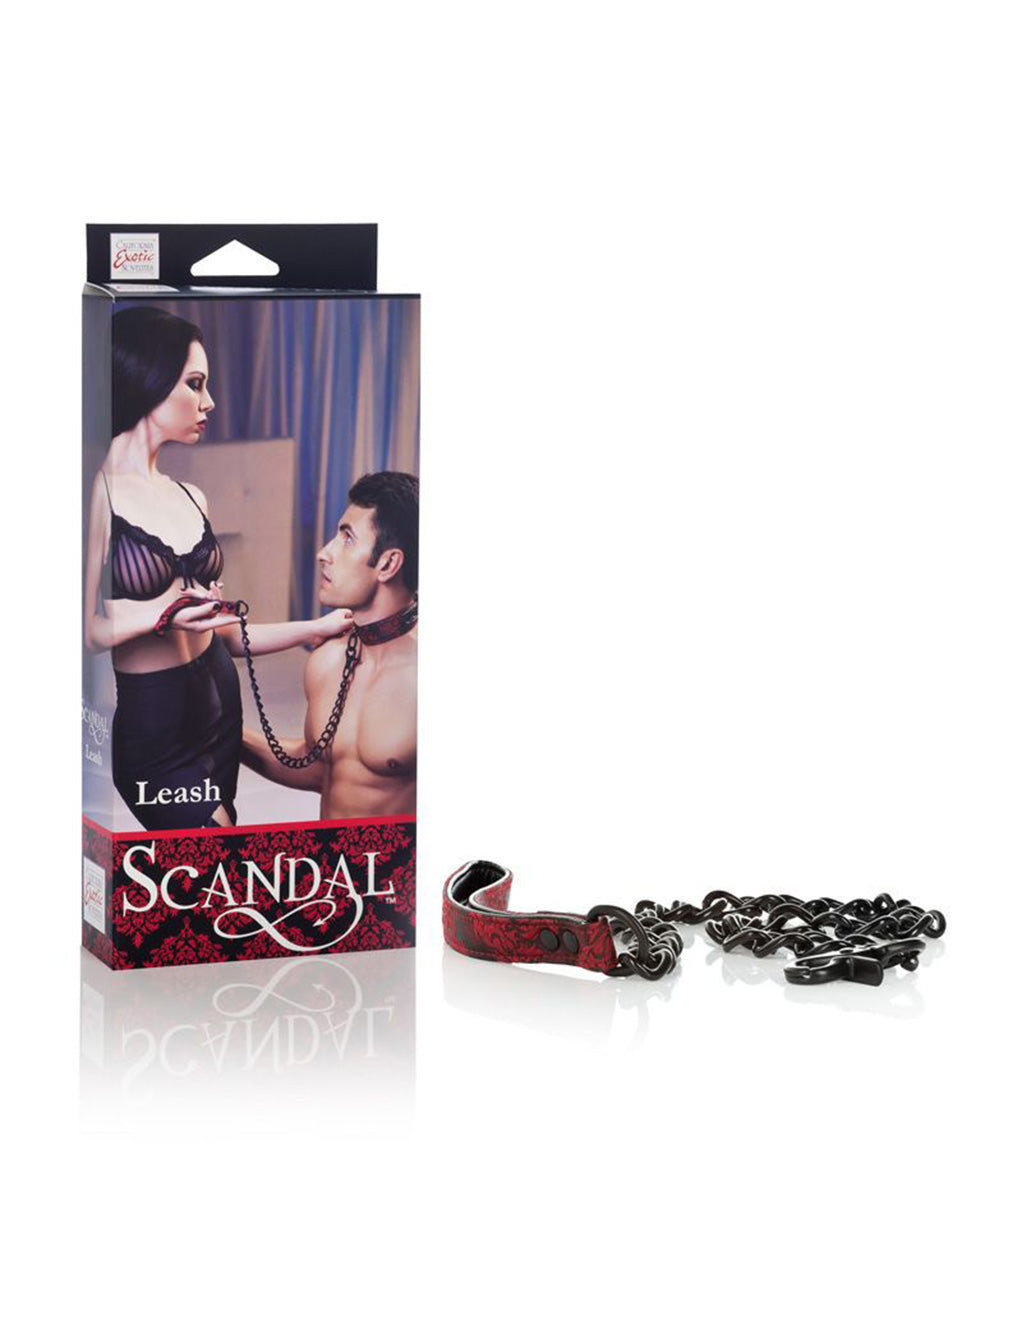 Scandal Metal Chain Leash - Fetish BDSM - Collar Leash